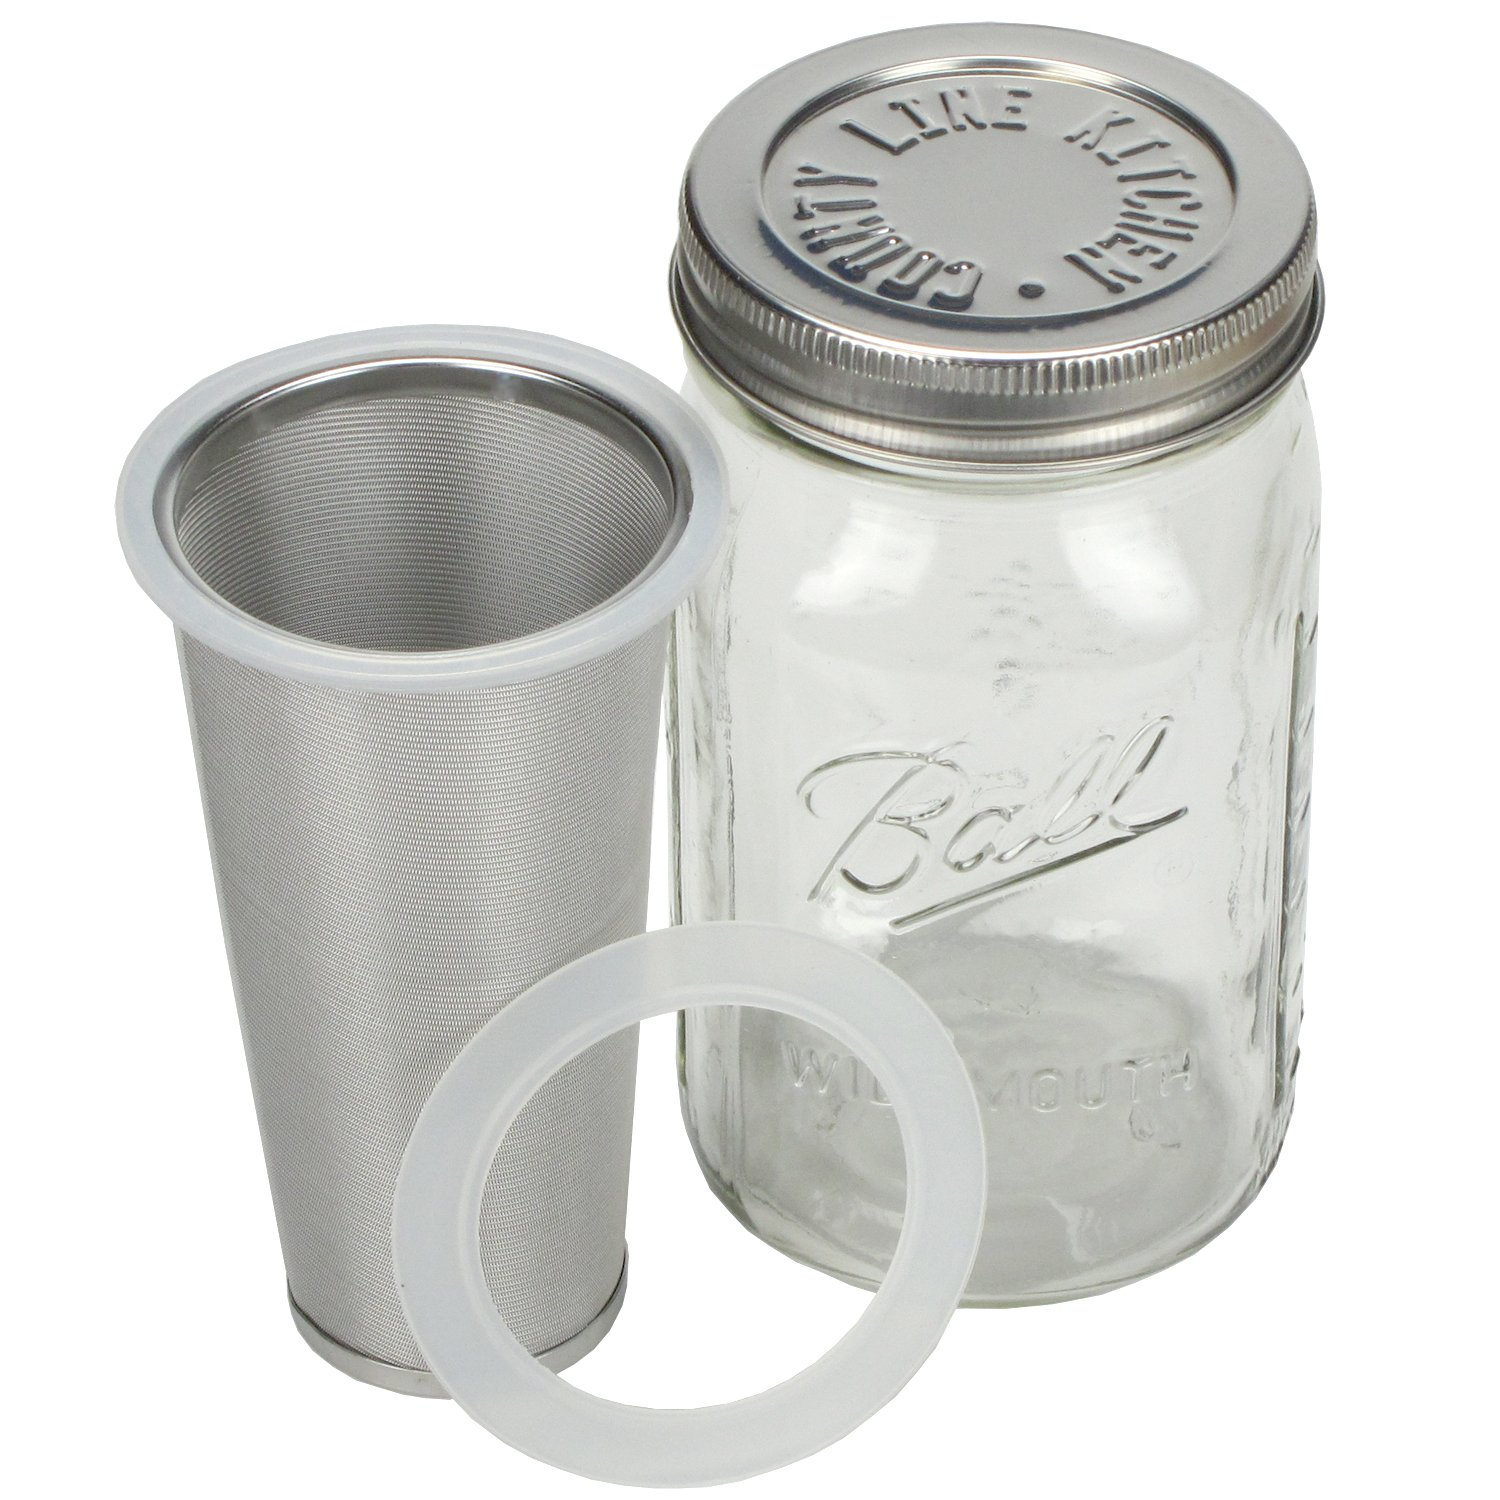 Cold Brew Coffee Maker by County Line Kitchen - 1 Quart - Make Amazing Cold Brew Coffee and Tea with This Durable Mason Jar and Stainless Steel Filter and Stainless Steel Lid by County Line Kitchen